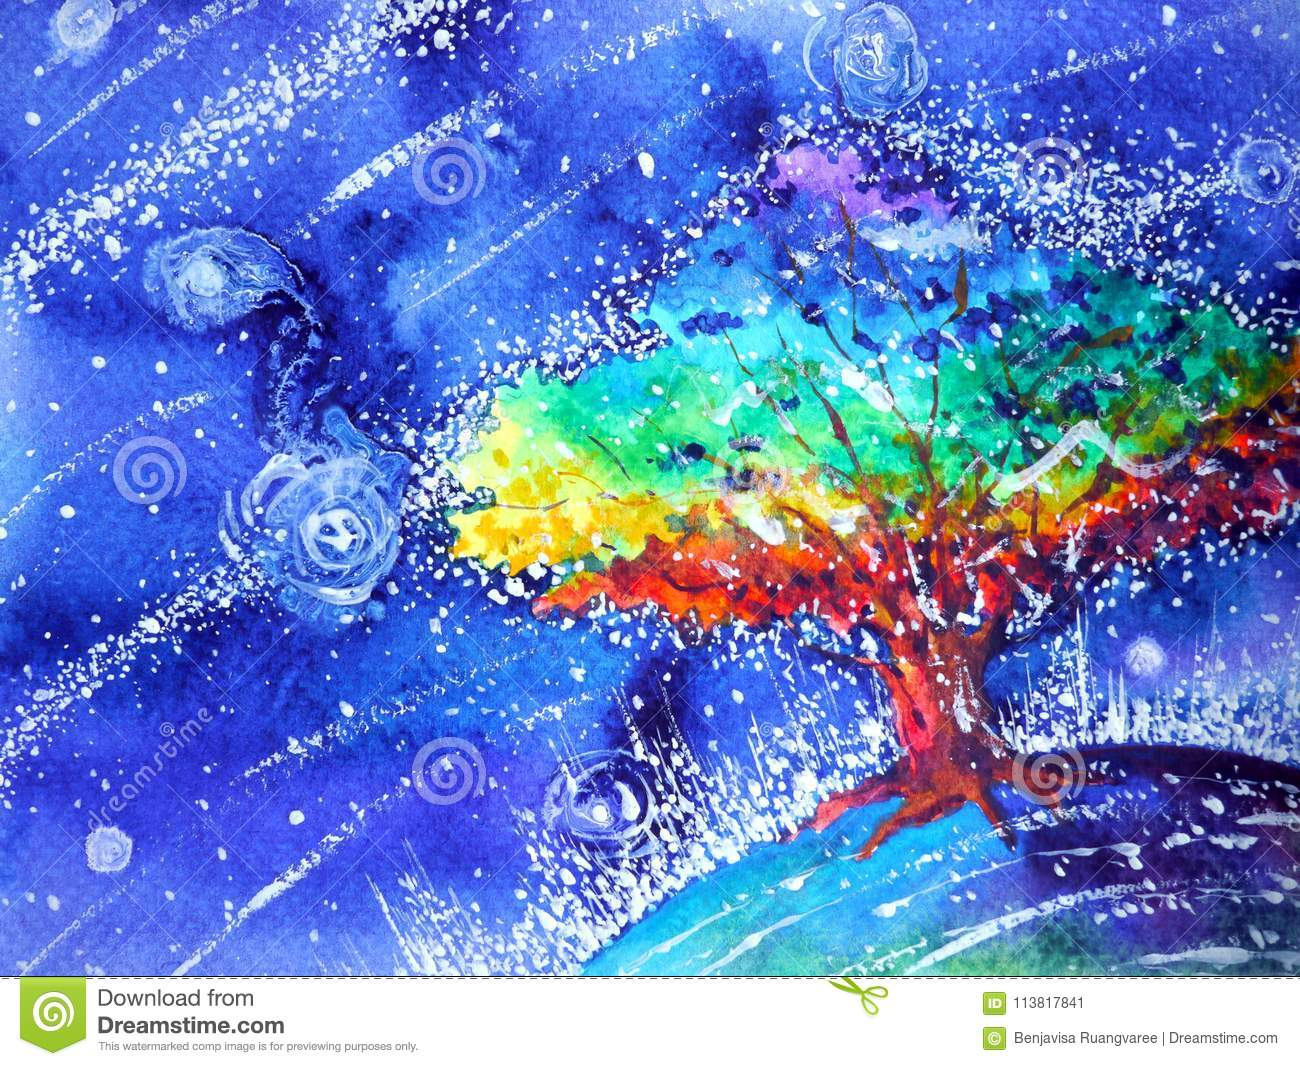 Rainbow tree color colorful watercolor painting blue night illustration